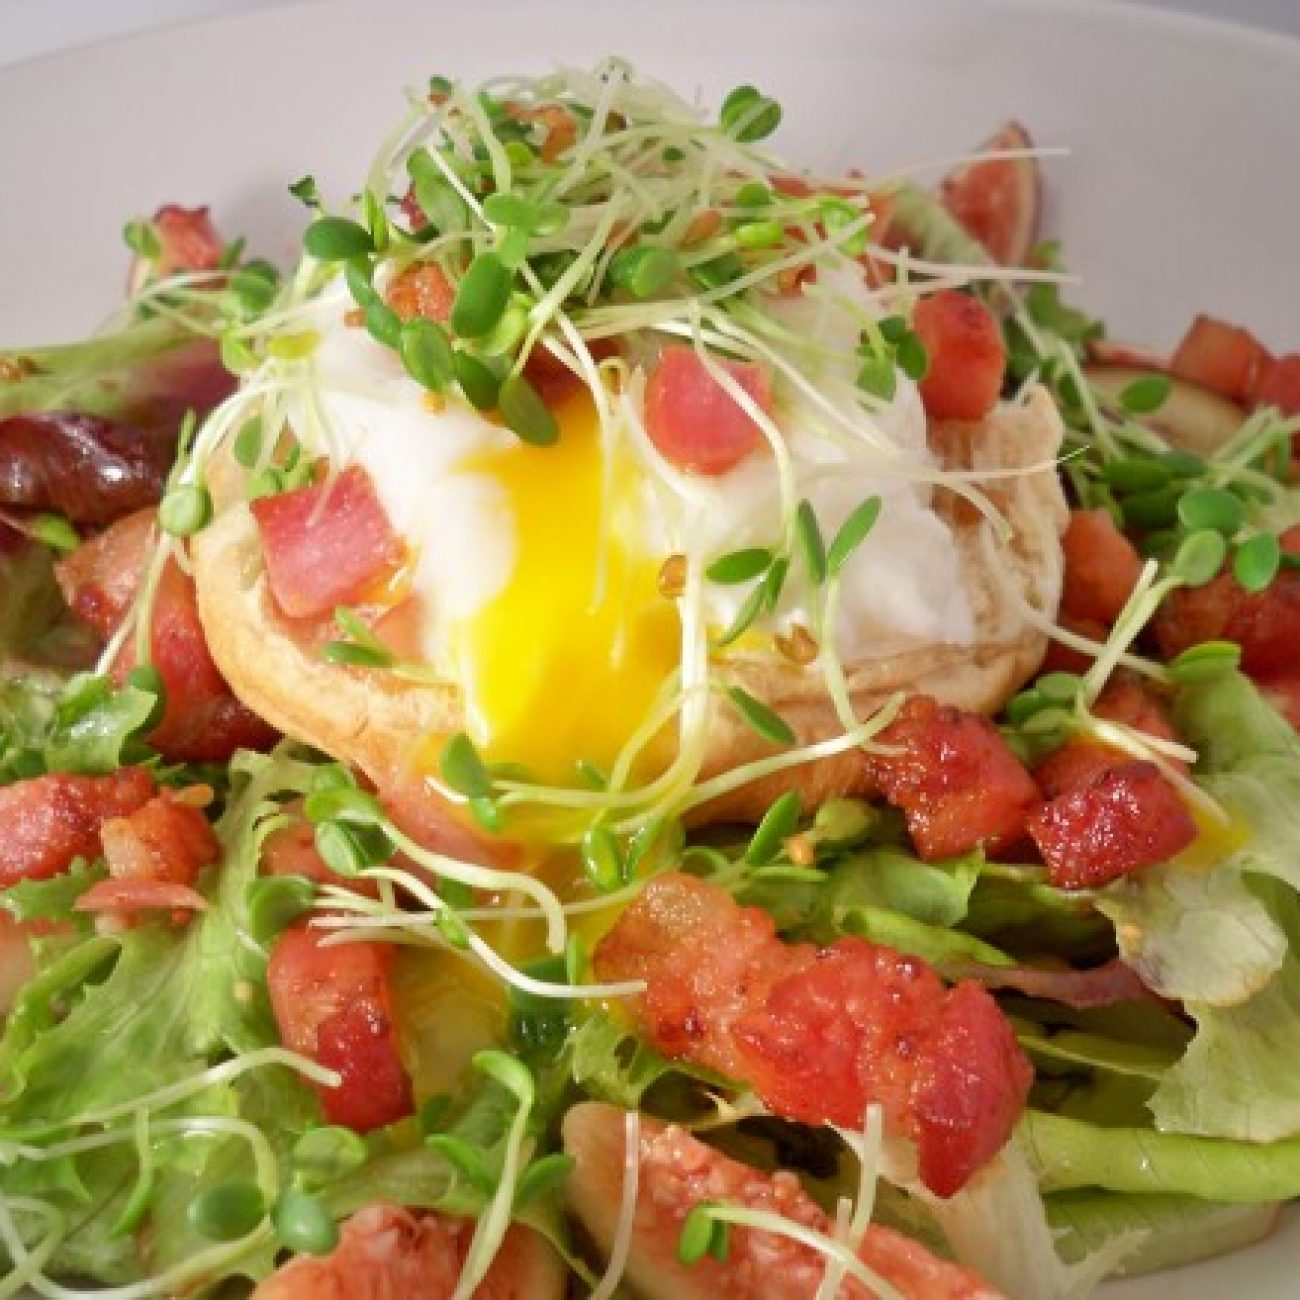 Fig and Lardon Salad with Poached Egg